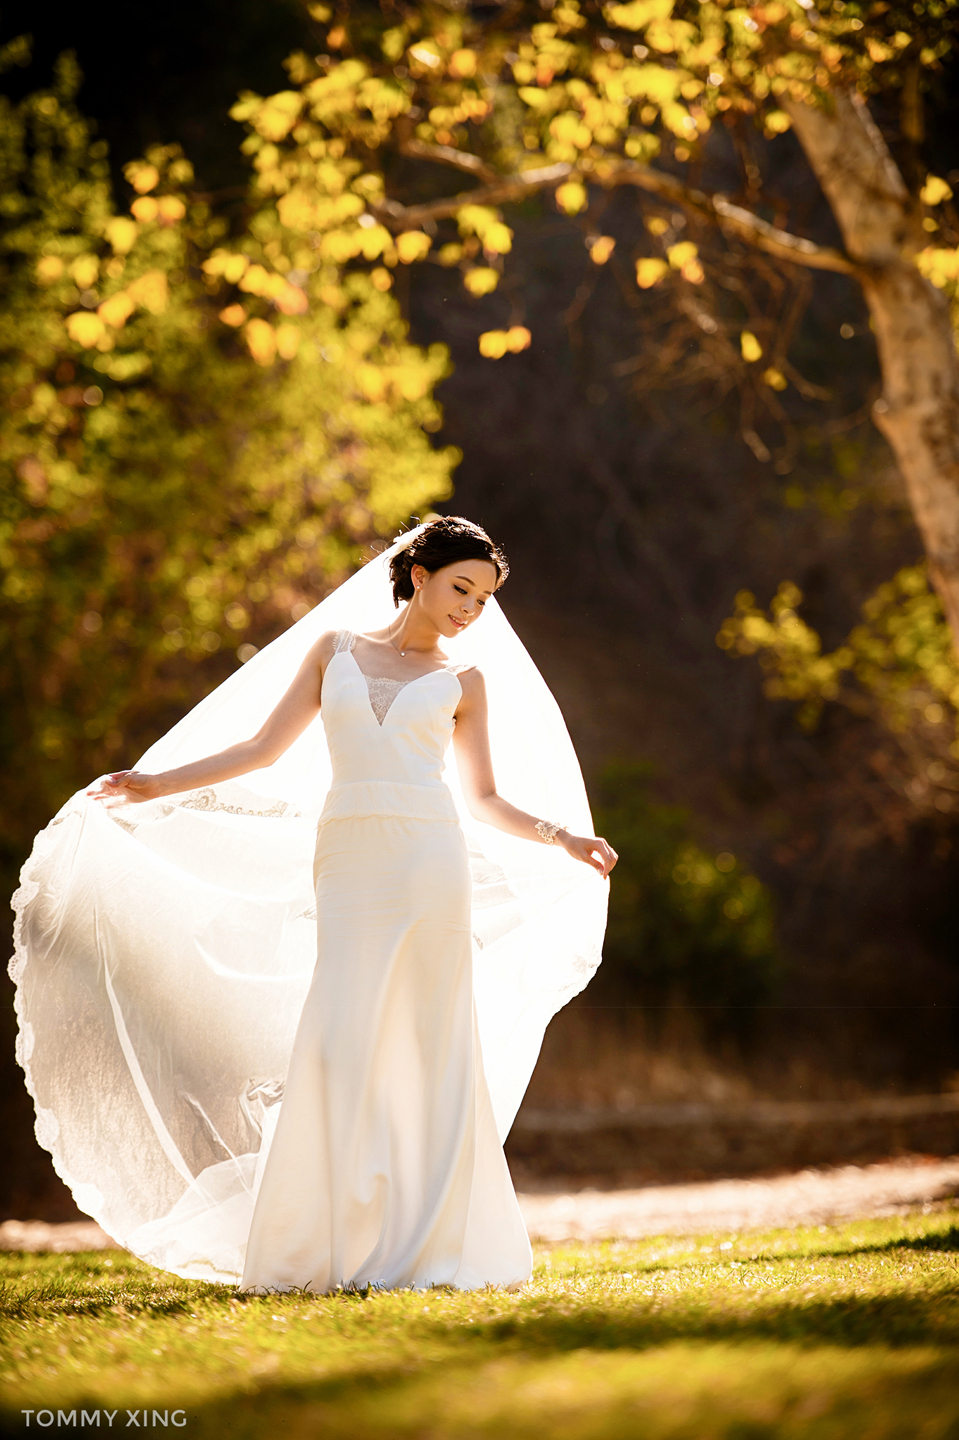 Los Angeles per-wedding 洛杉矶婚纱照 by Tommy Xing Photography 07.jpg